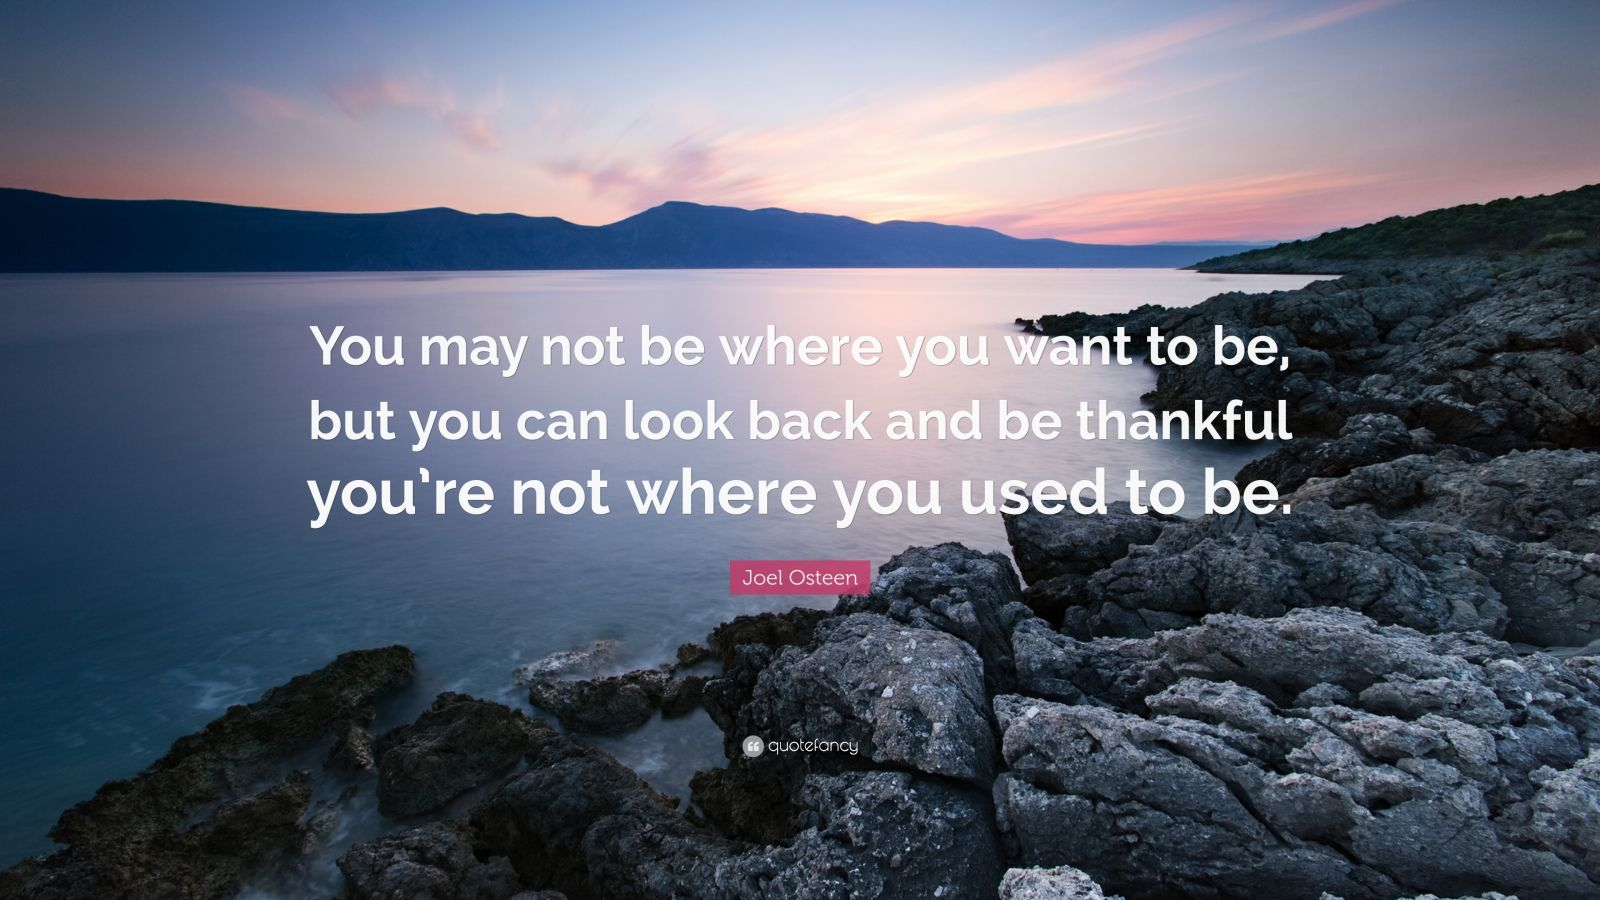 """Joel Osteen Quote: """"You may not be where you want to be, but you can look back and be thankful you're not where you used to be."""""""